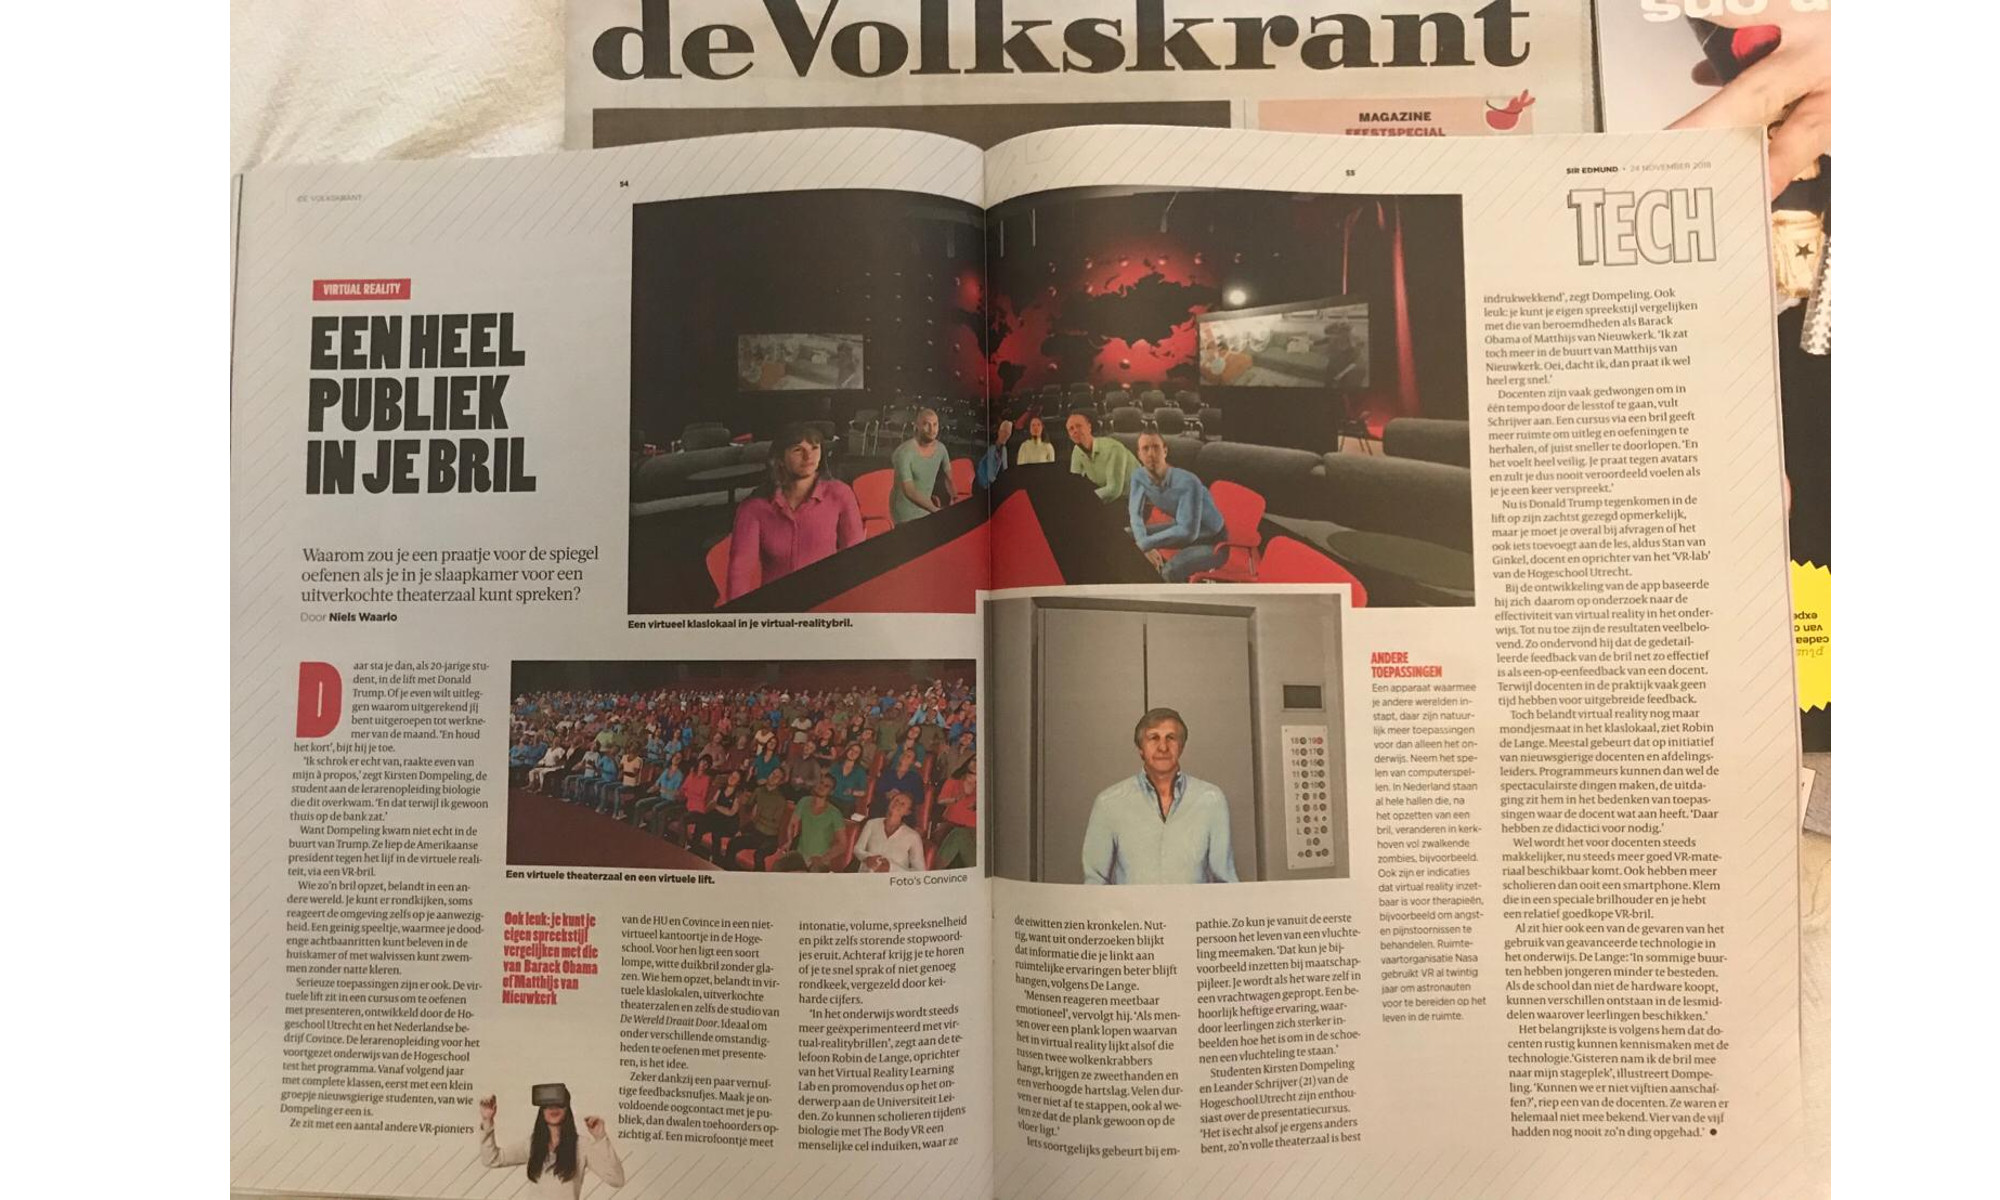 Volkskrant2000x1200 - VR Learning Journeys @Volkskrant